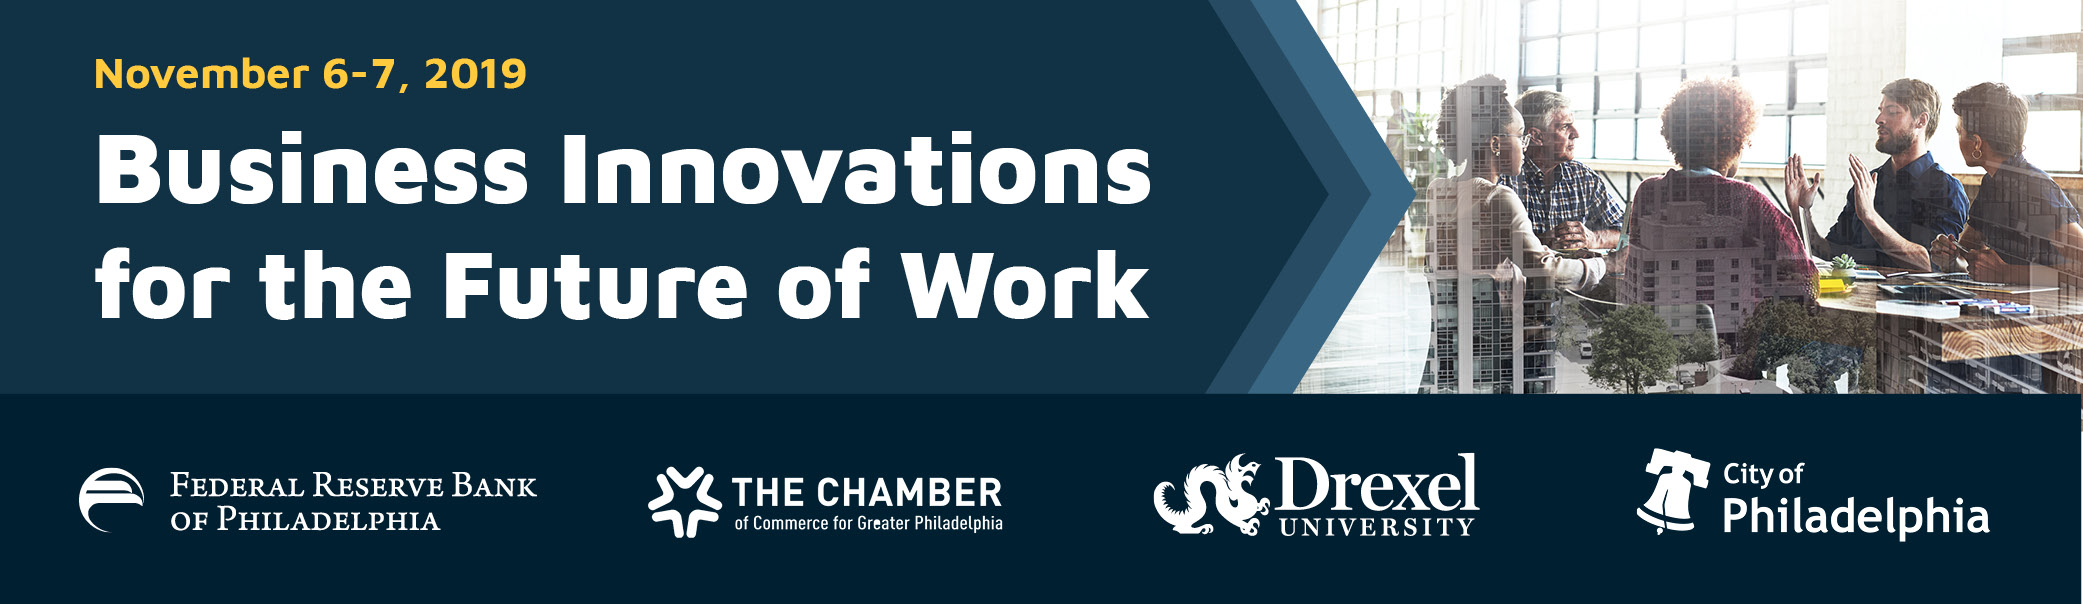 Business Innovations for the Future of Work